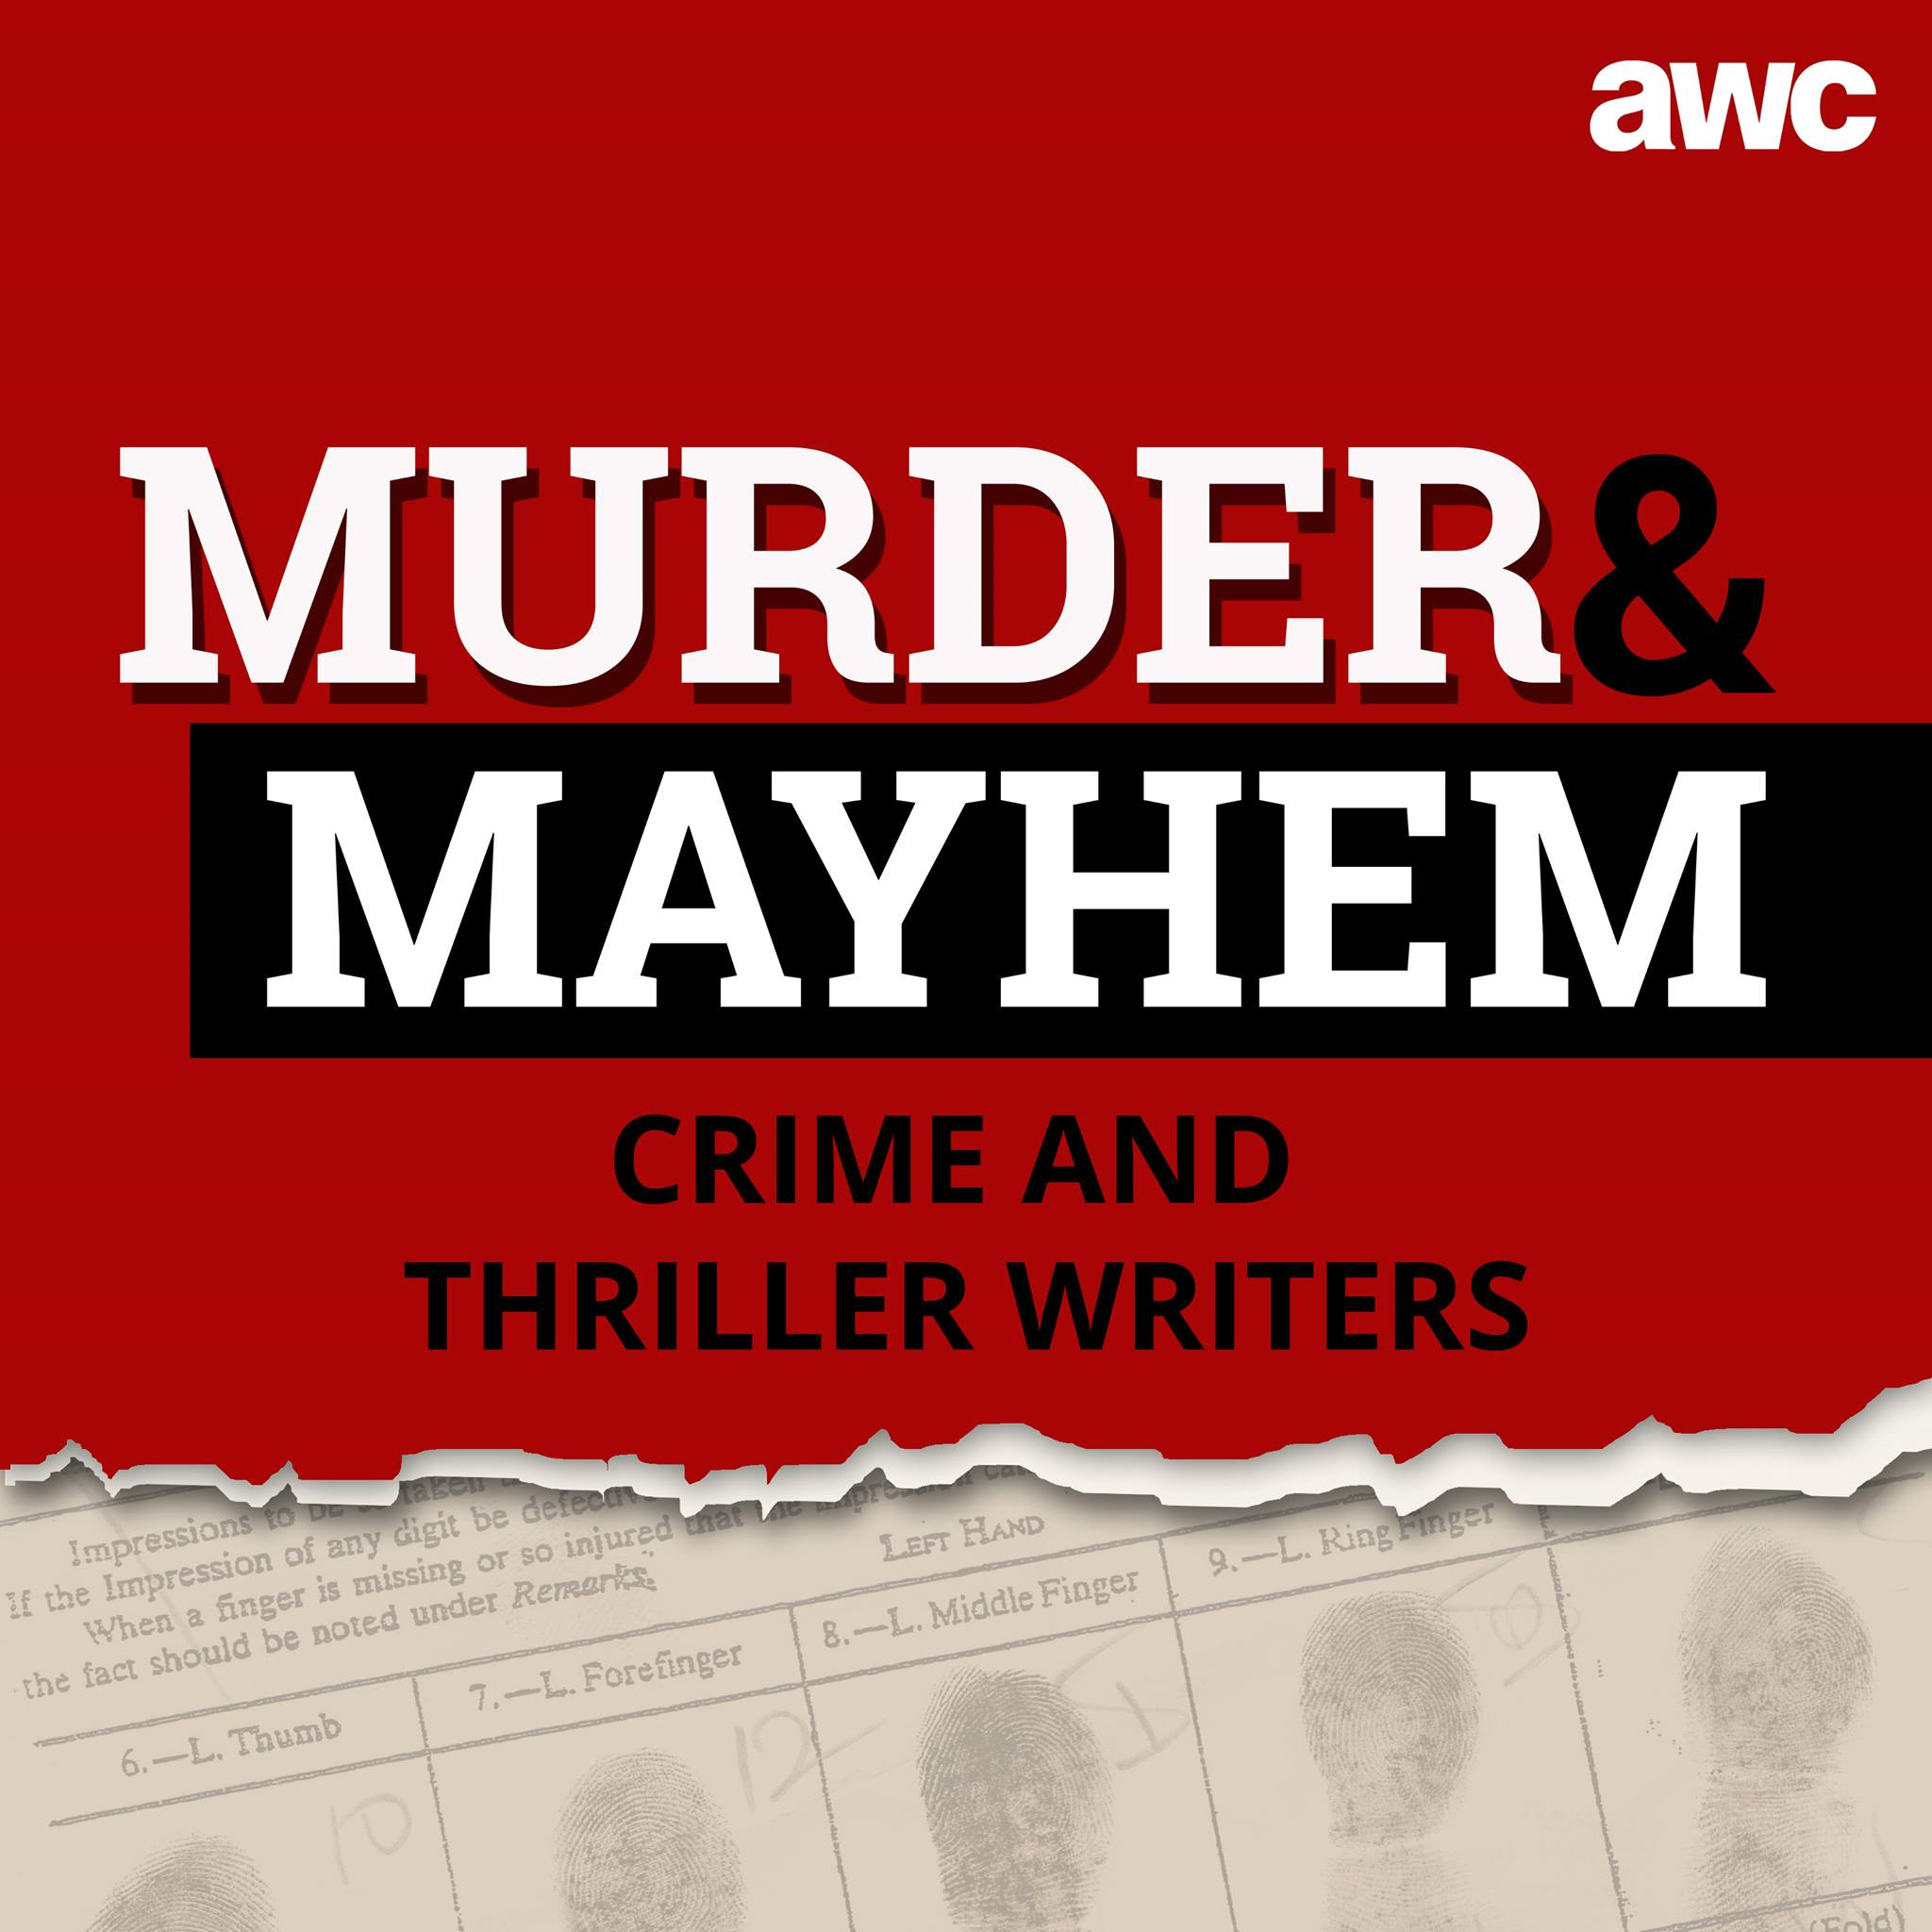 MURDER MAYHEM 25: Katherine Howell is a crime fiction author best known for her series featuring Ella Marconi. @KHowell_Author